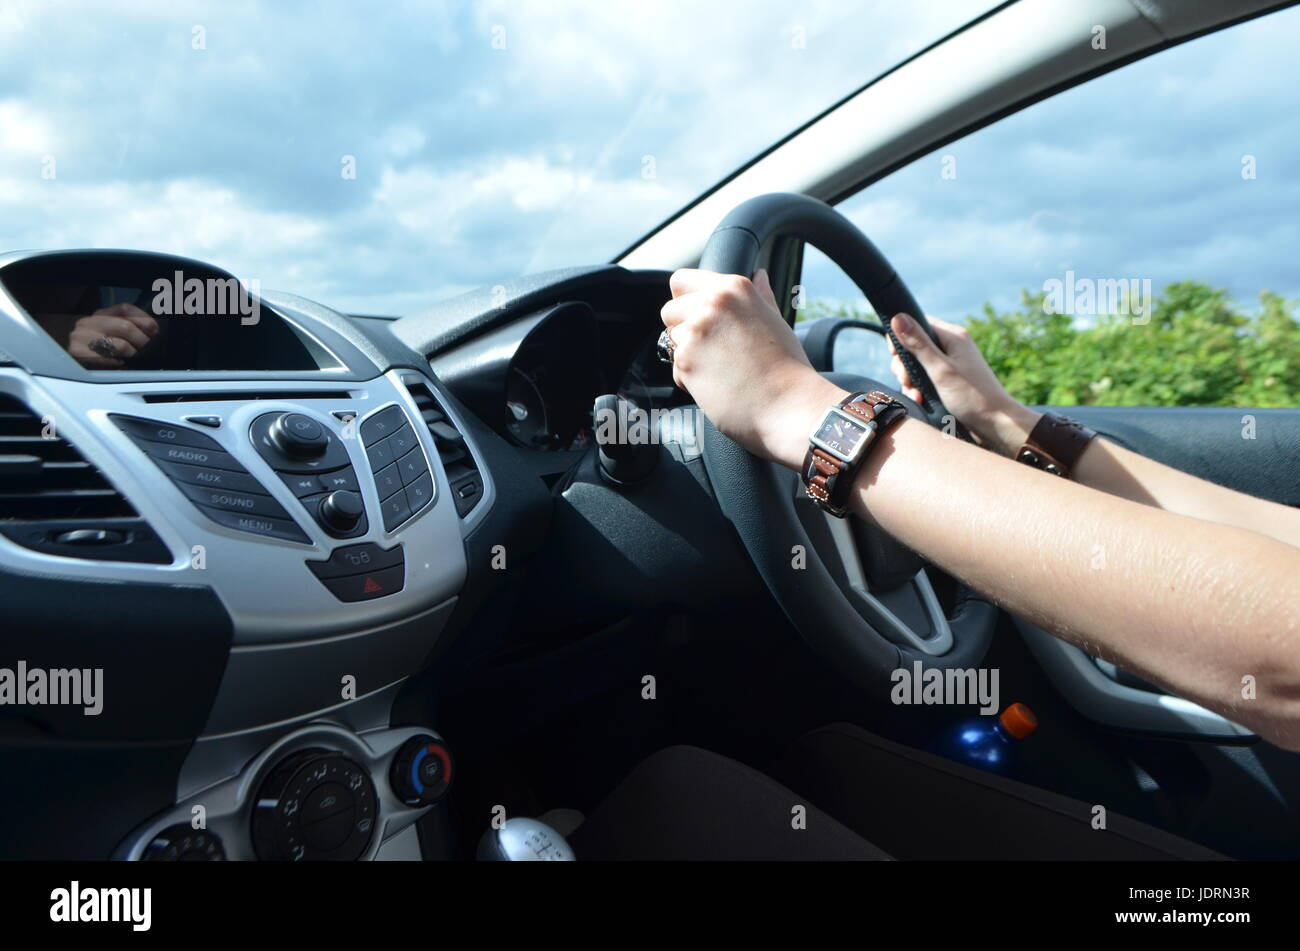 woman 39 s hands on a steering wheel driving a car on the right side stock photo royalty free. Black Bedroom Furniture Sets. Home Design Ideas